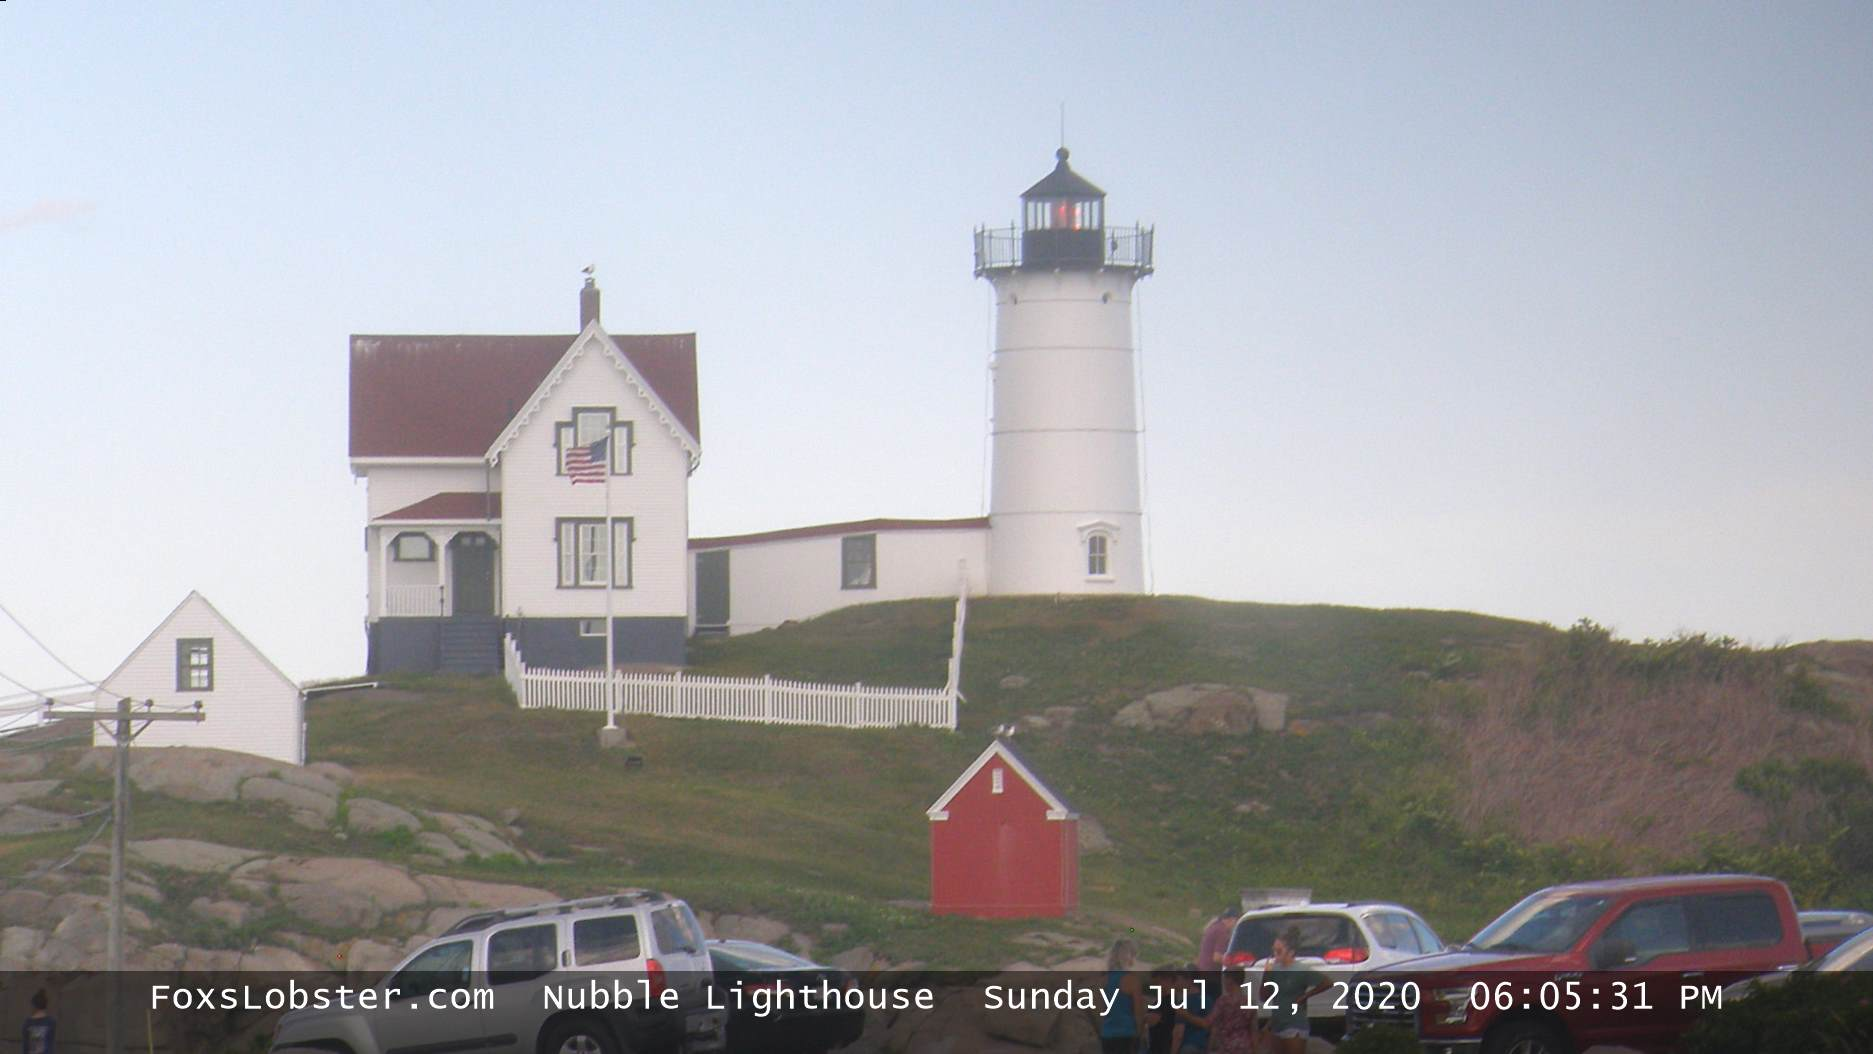 York Nubble Lighthouse